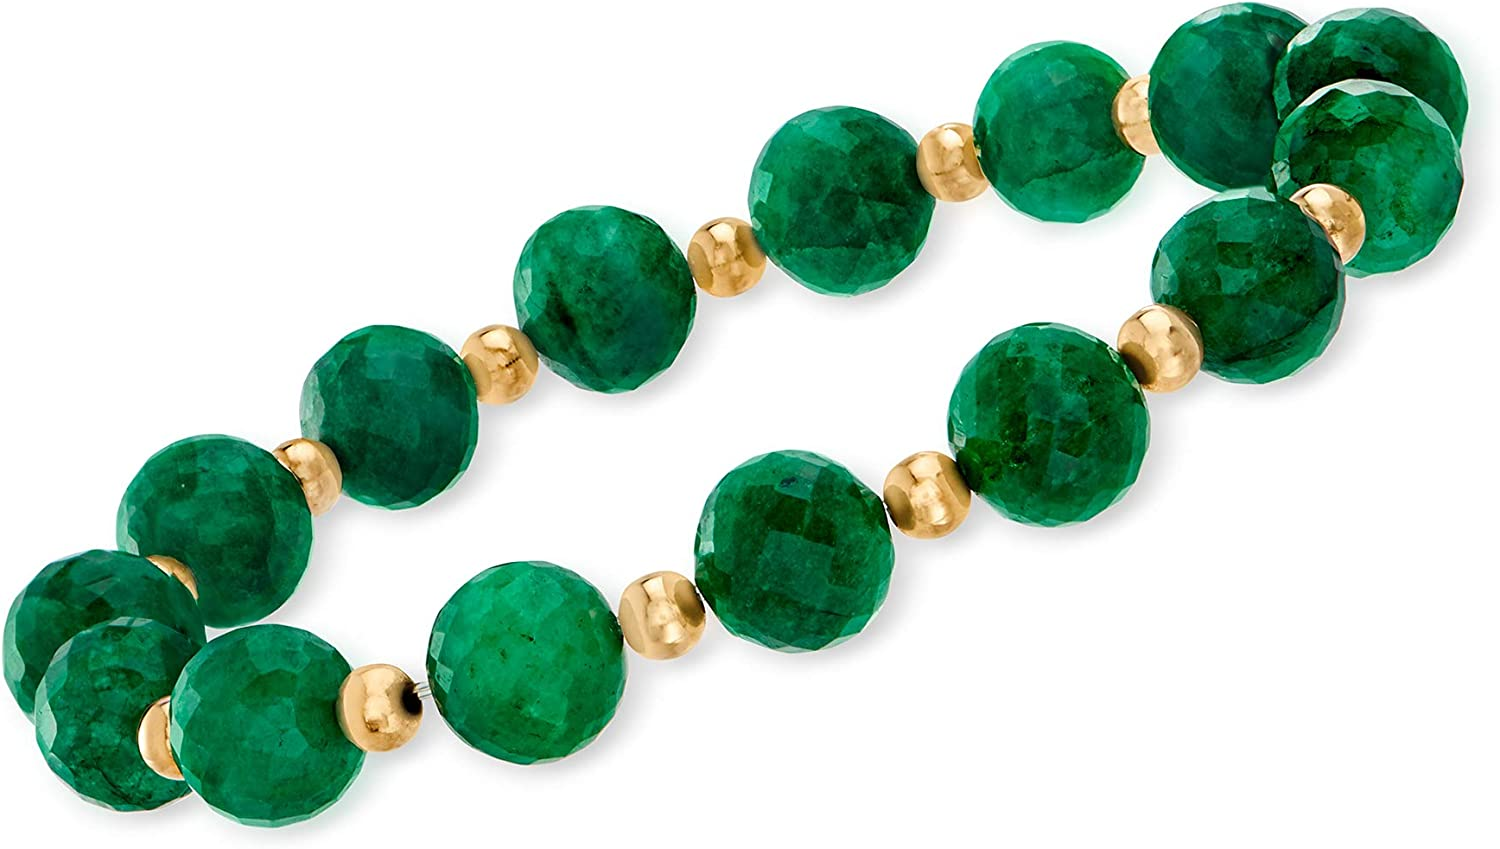 Ross-Simons Over item handling ☆ 90.00 Import ct. t.w. Emerald 14 Bead With Bracelet Stretch